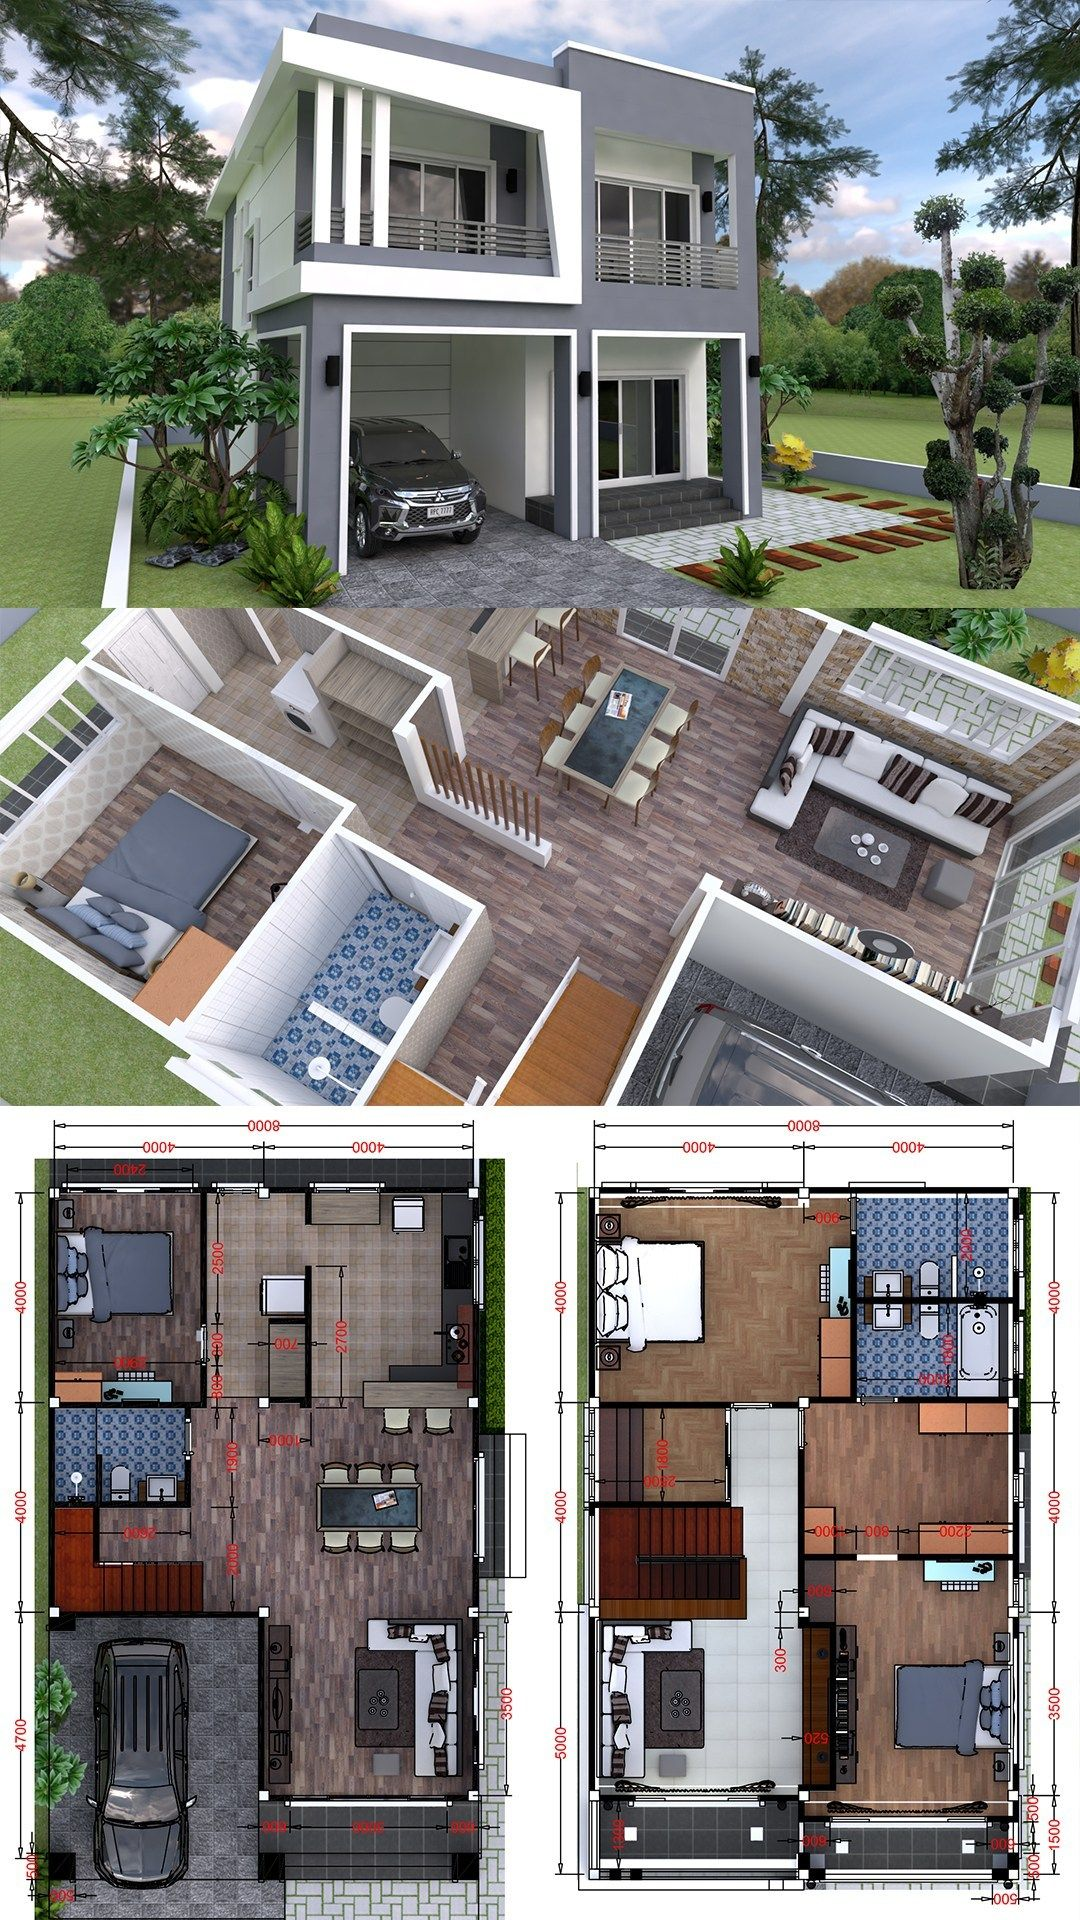 Plan 3d Interior Design Home Plan 8x13m Full Plan 3beds Samphoas Plansearch Duplex House Design Interior Design Plan House Plans